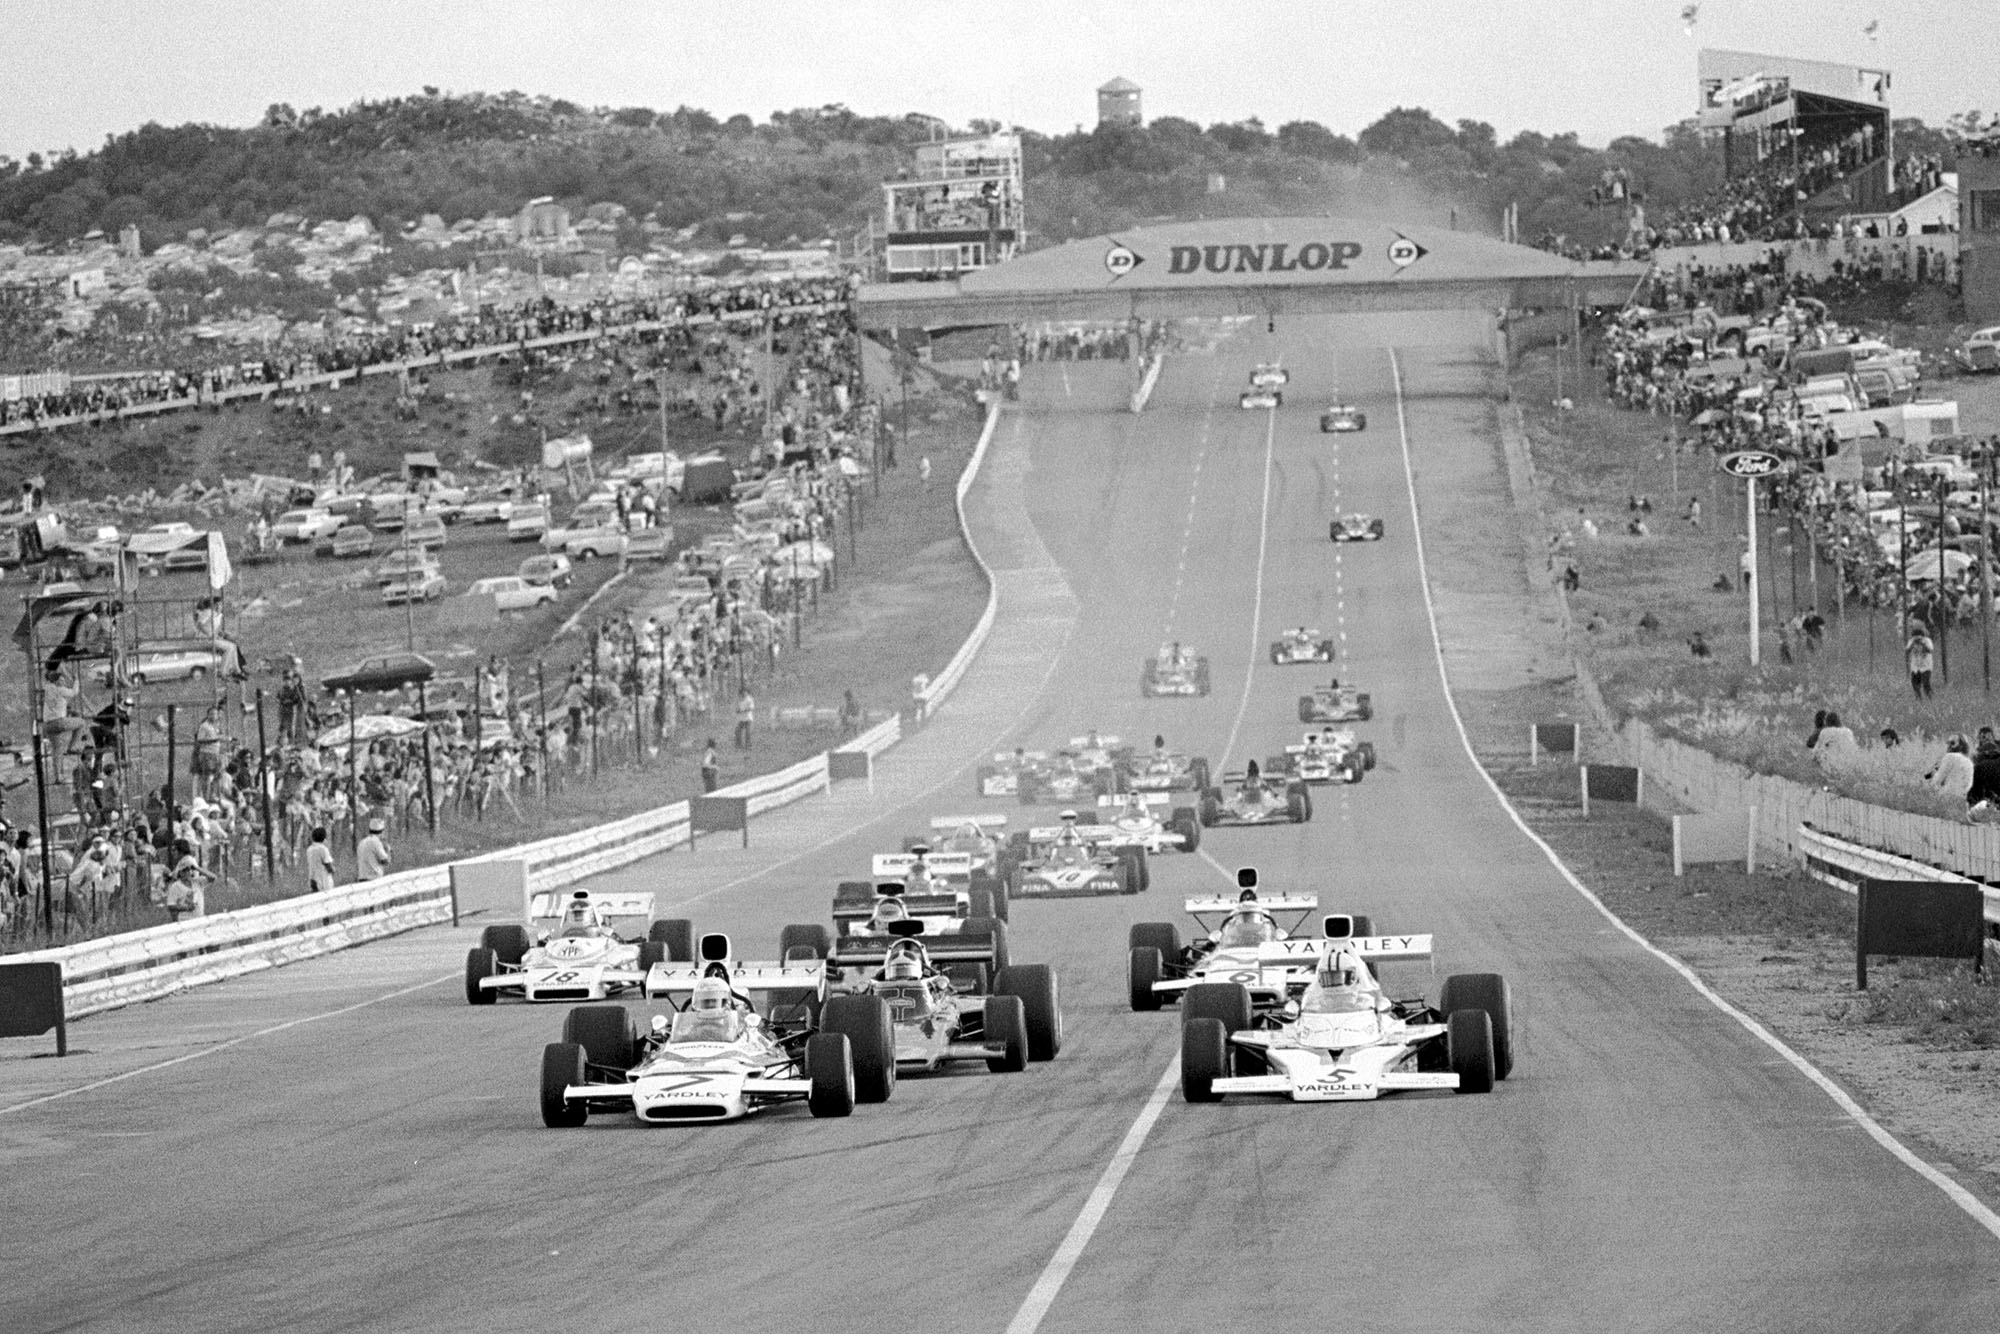 The race gets underway as the cars head into the first corner at the 1973 South African Grand Prix.